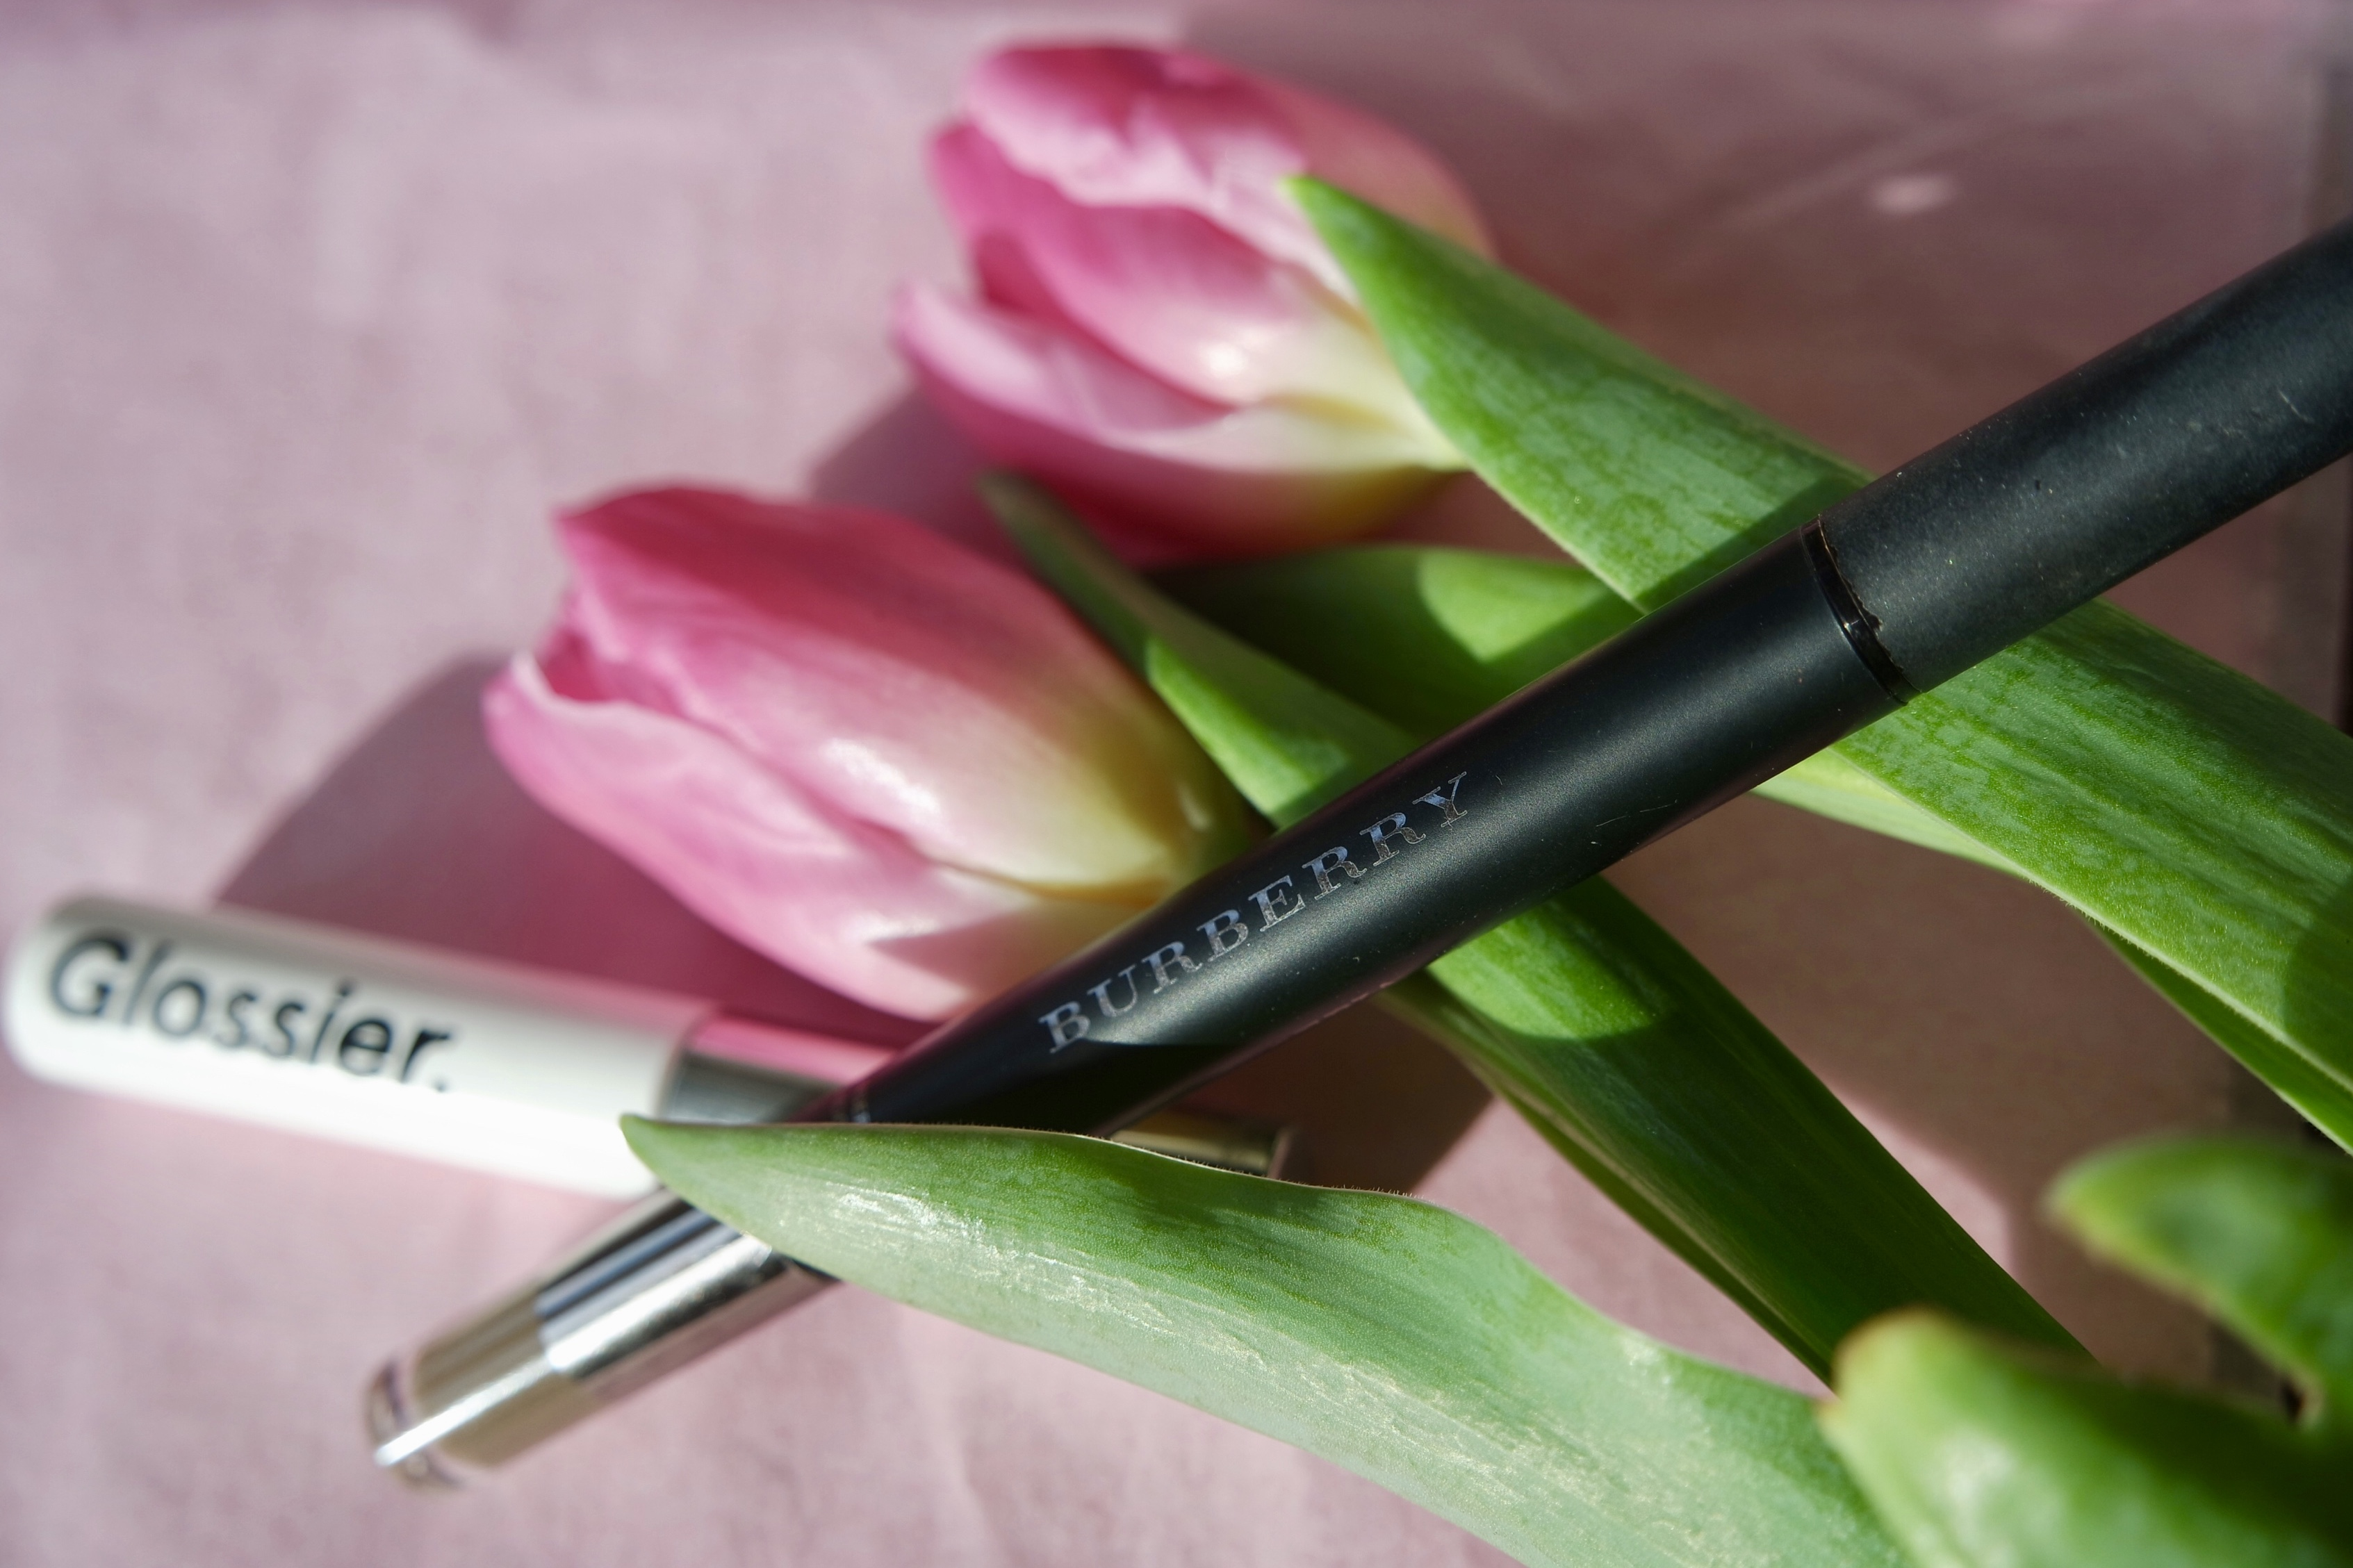 Burberry Full Brows Sepia, Glossier Boy Brow